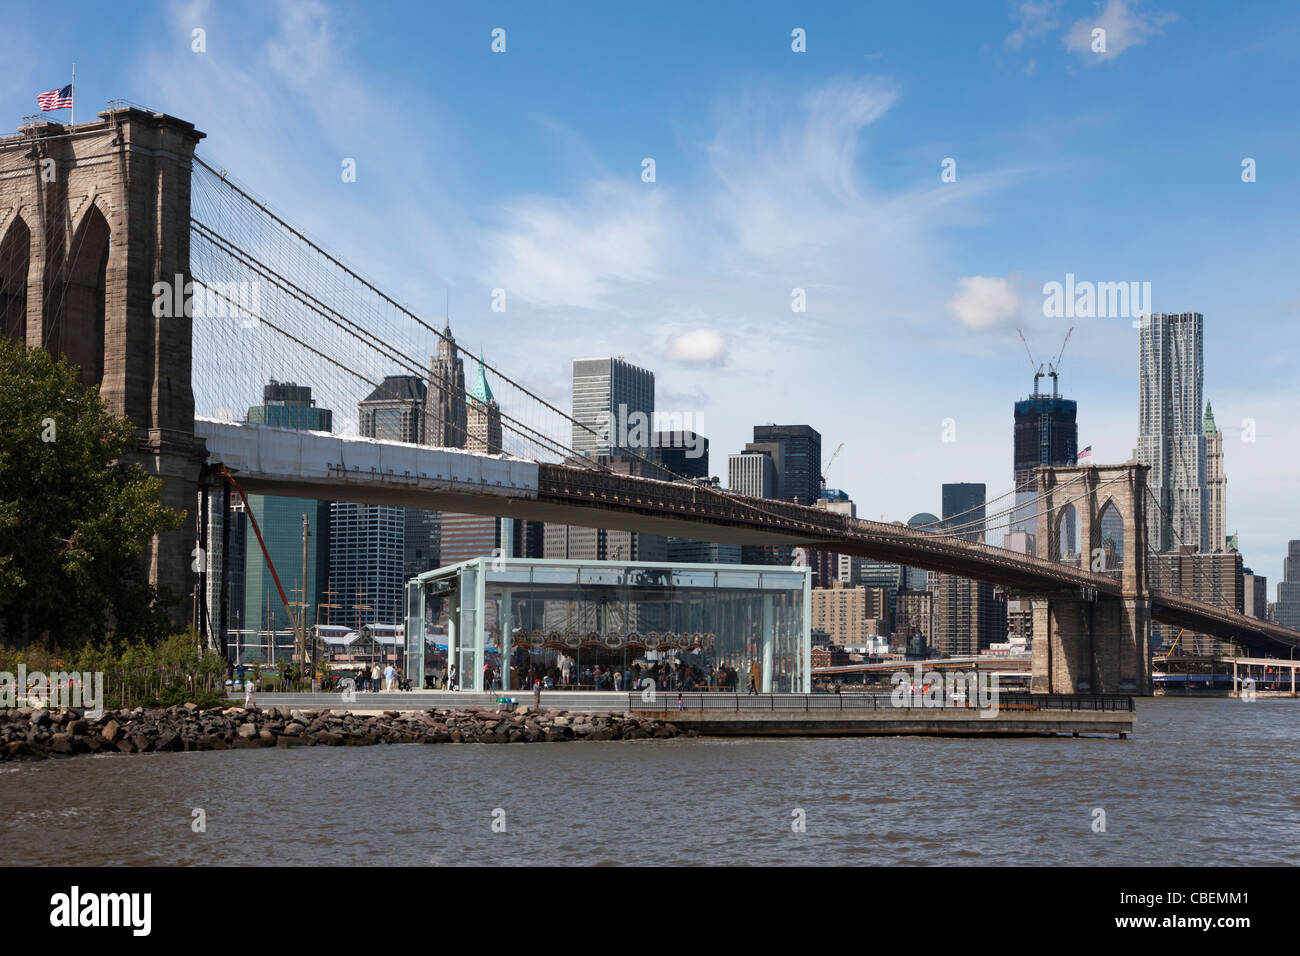 The historic Jane's Carousel in Brooklyn Bridge Park near the Brooklyn Bridge in New York City. - Stock Image